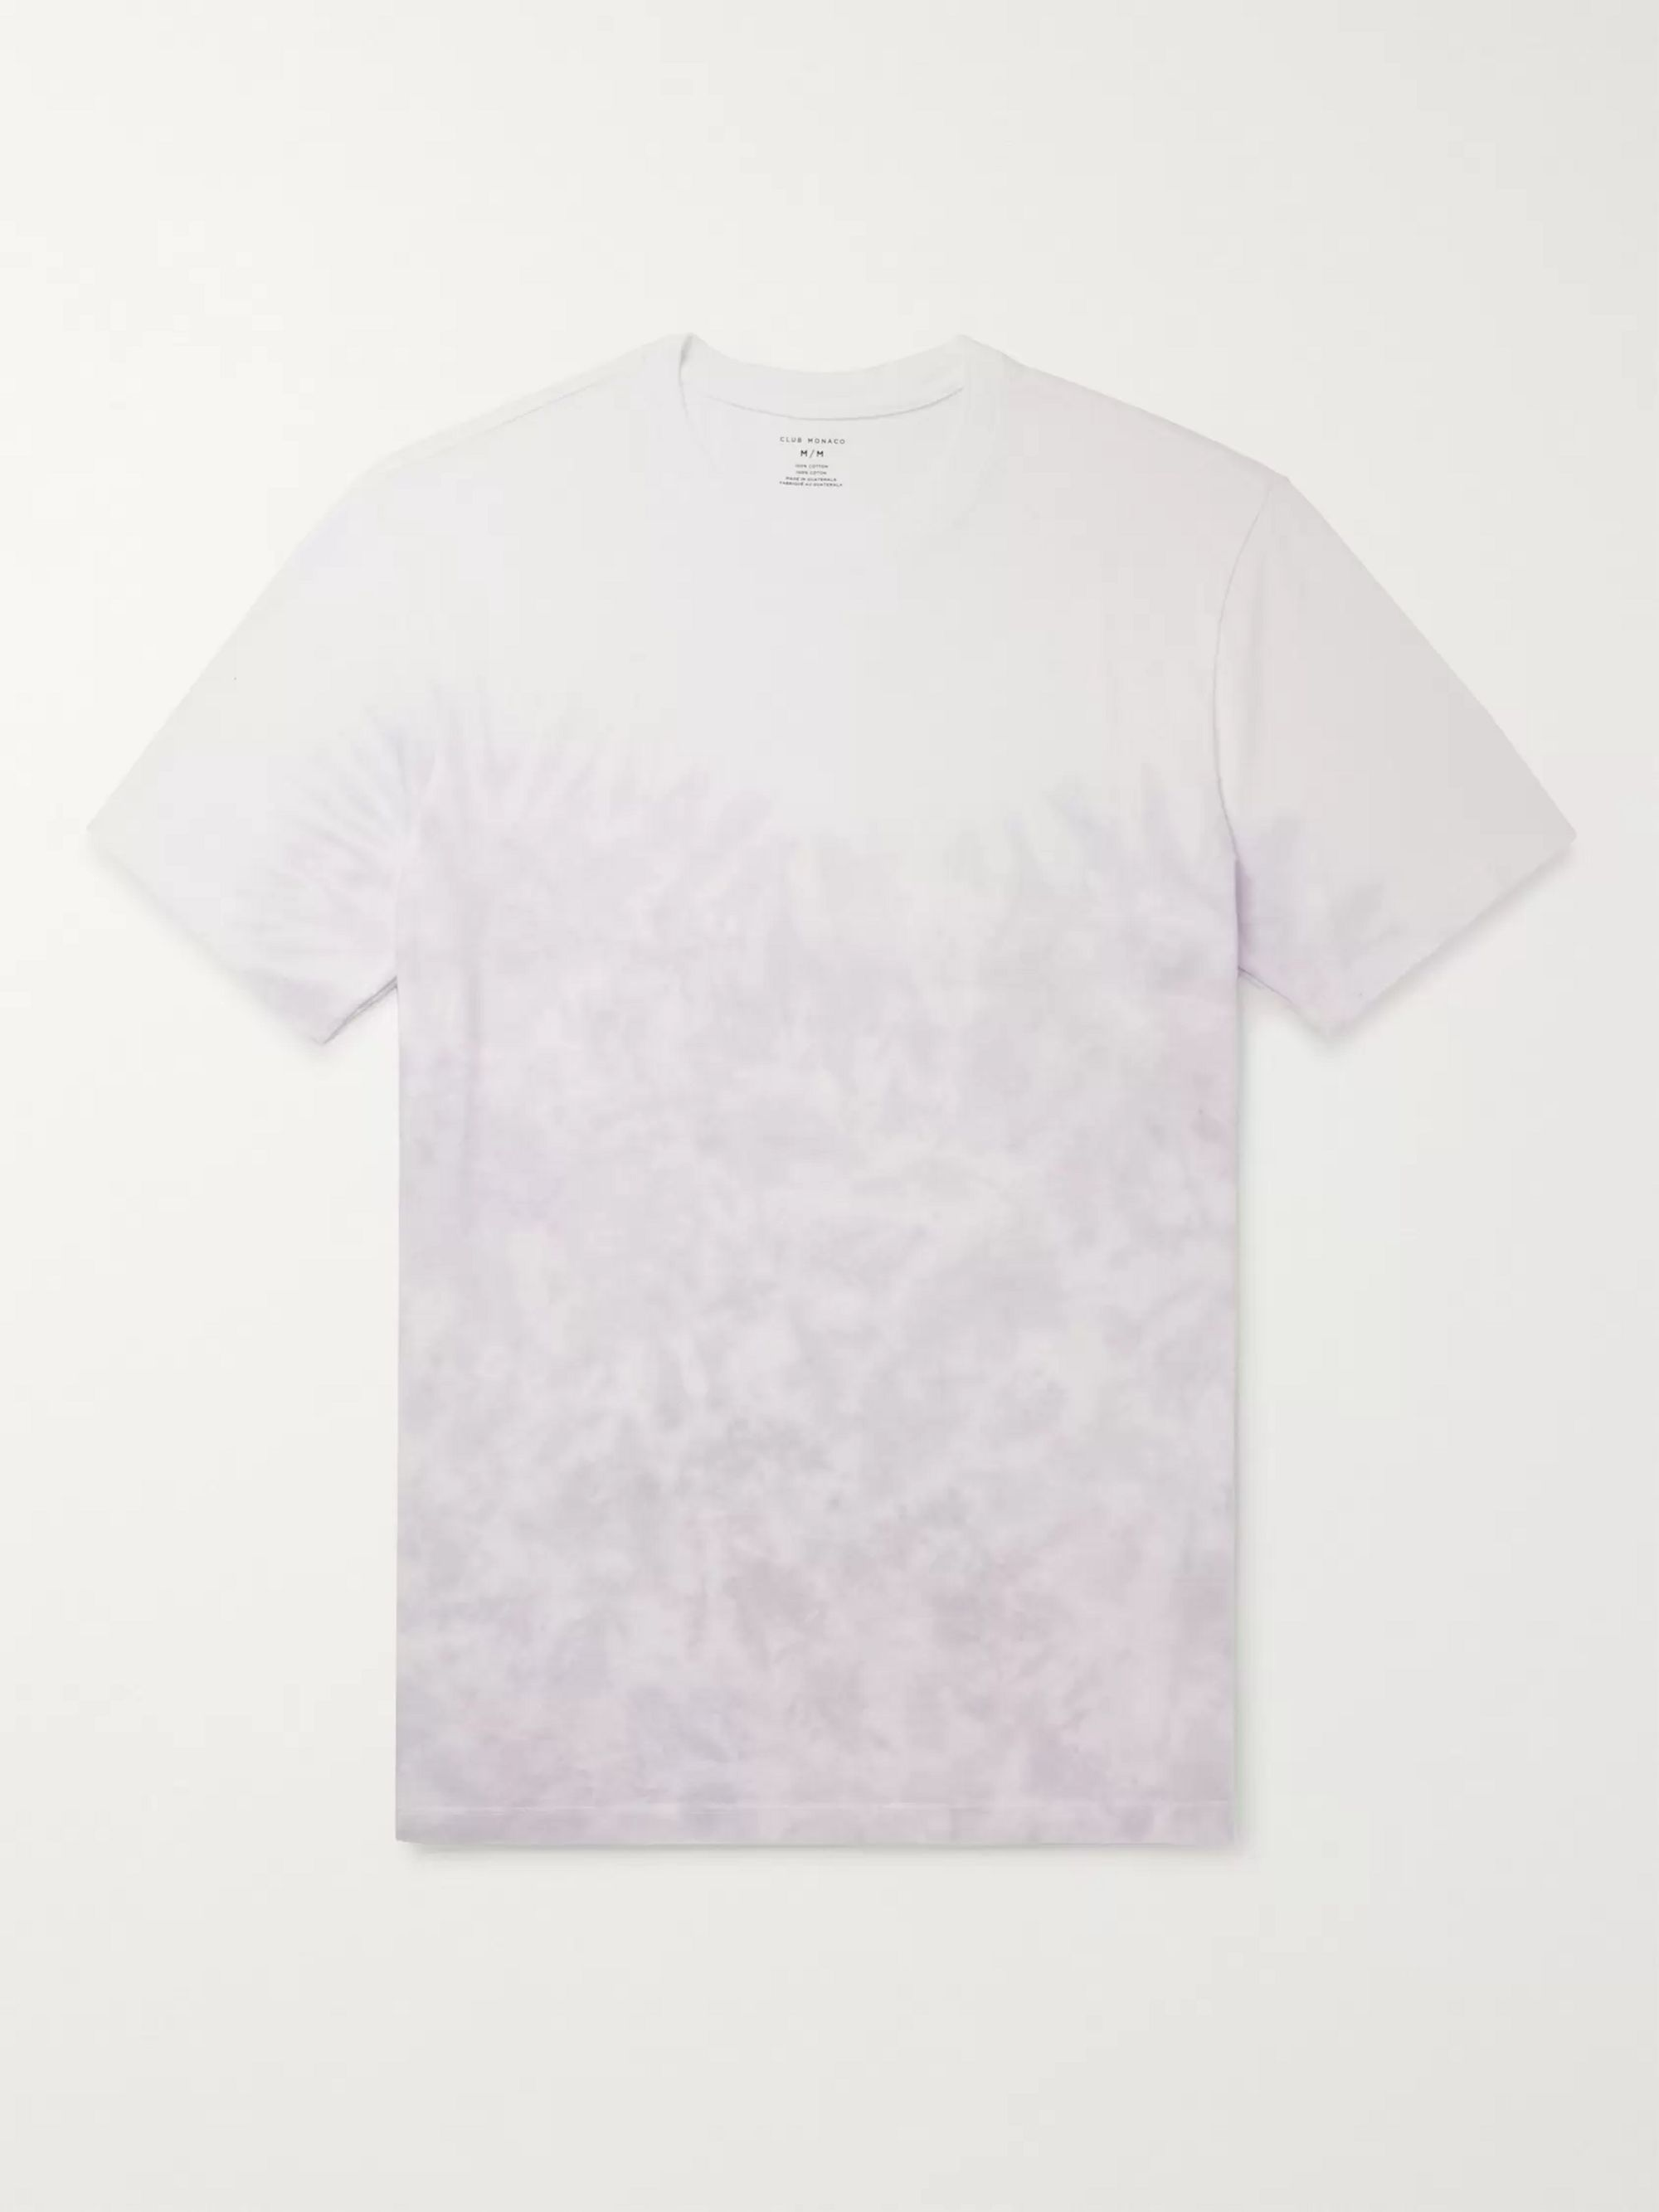 Club Monaco Tie-Dyed Cotton-Jersey T-Shirt